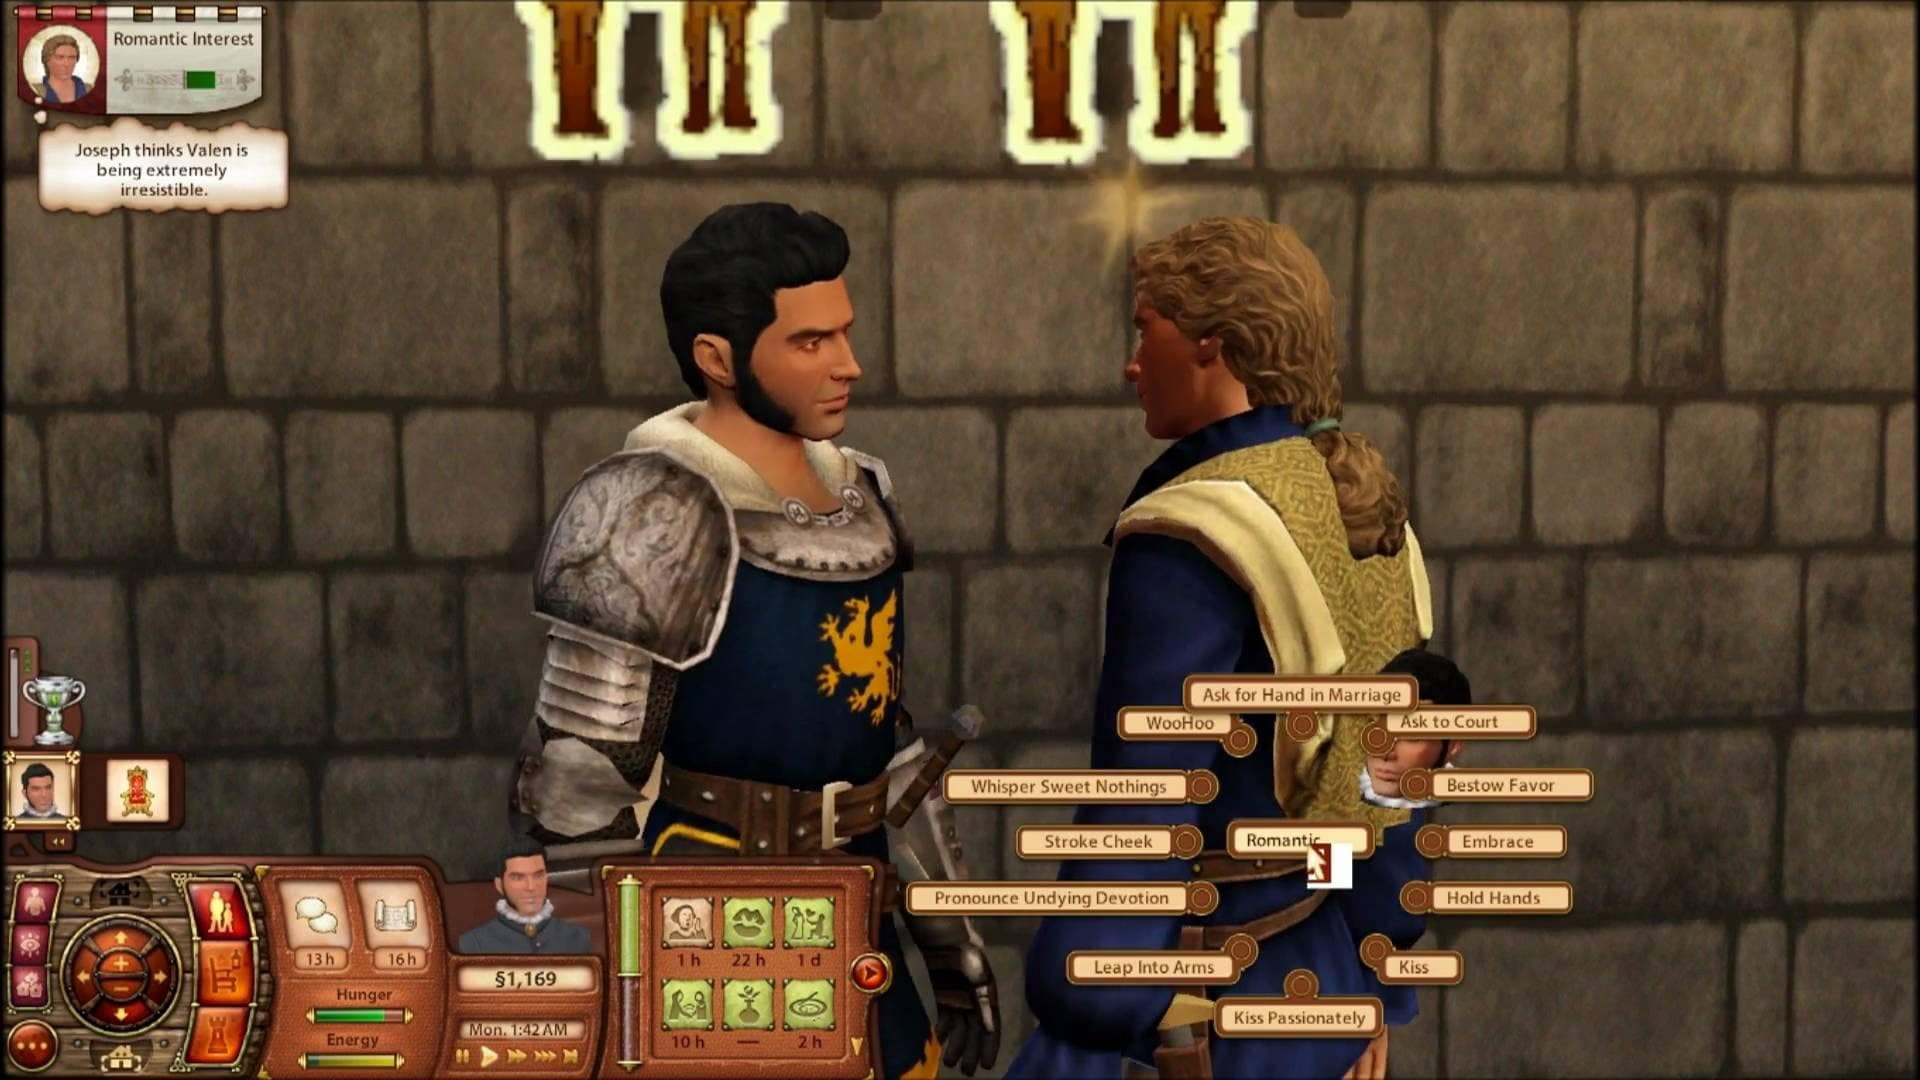 SIMS Medieval Cheat Codes, FAQs and More